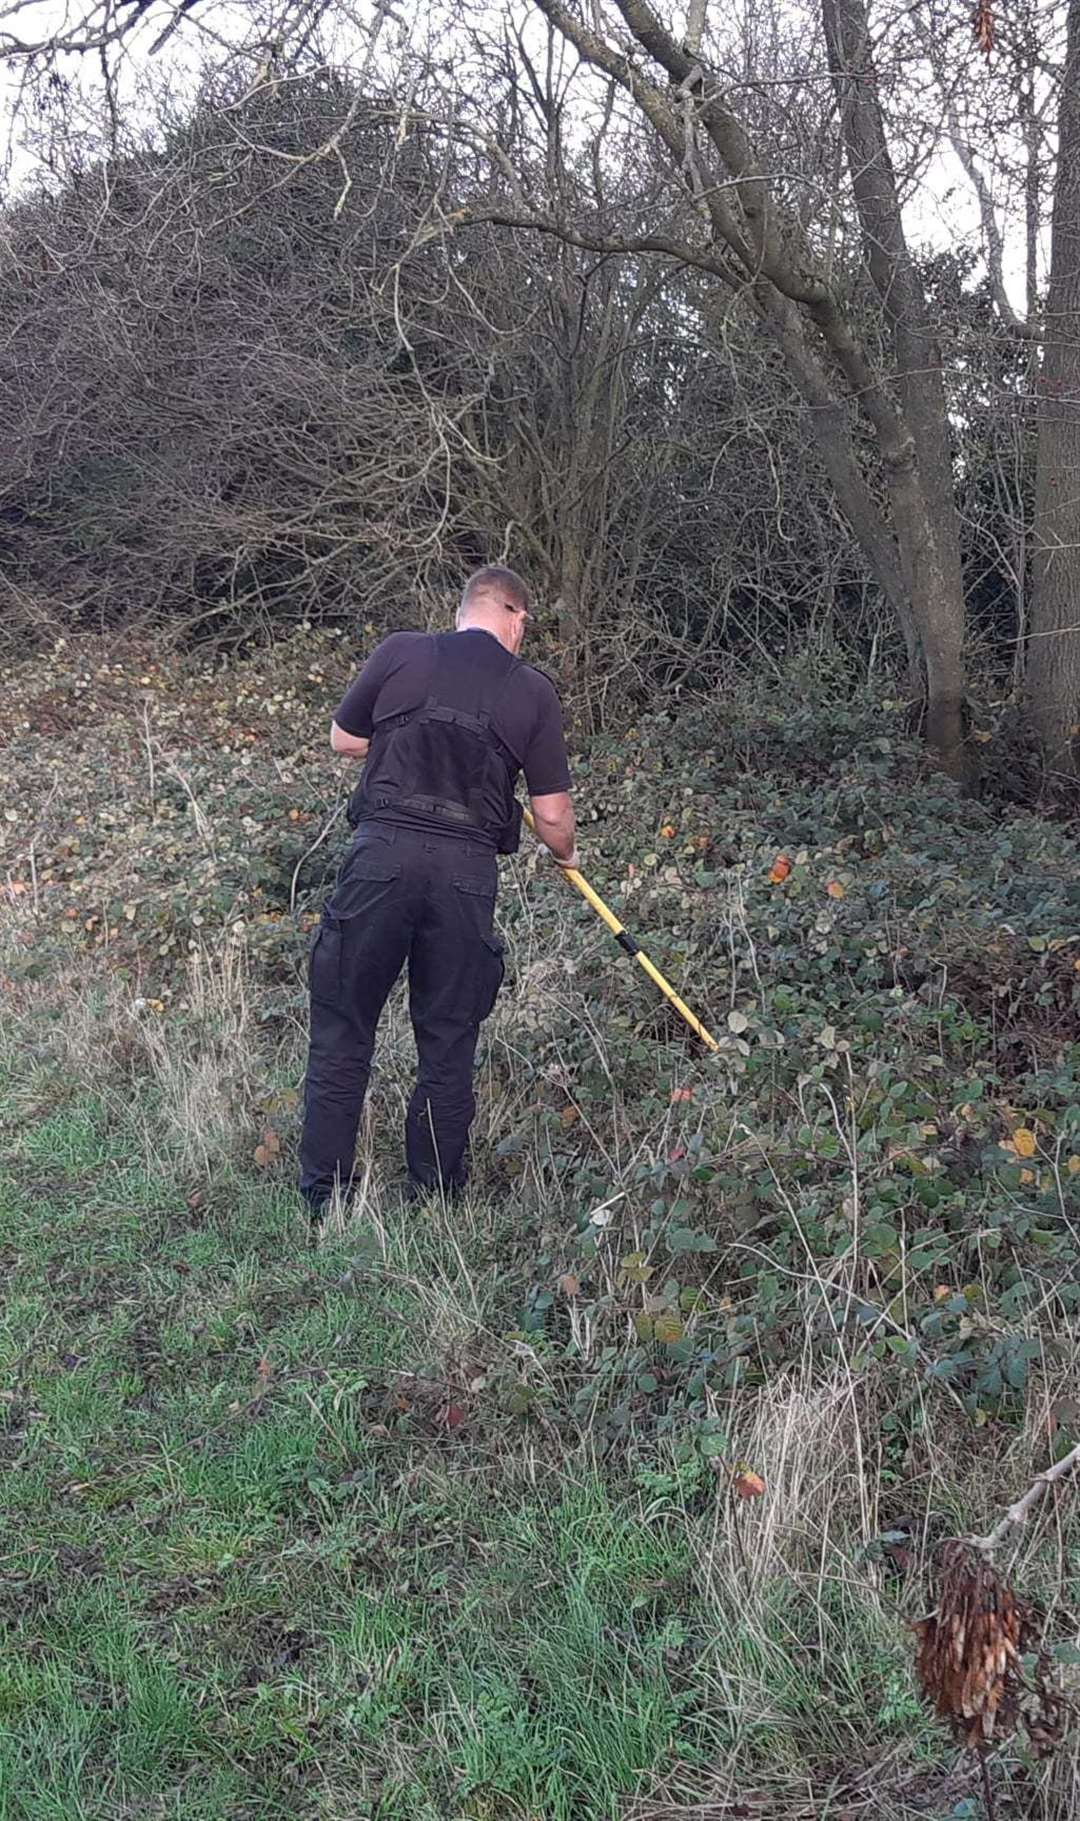 An officer conducting the weapon sweep. (43155470)